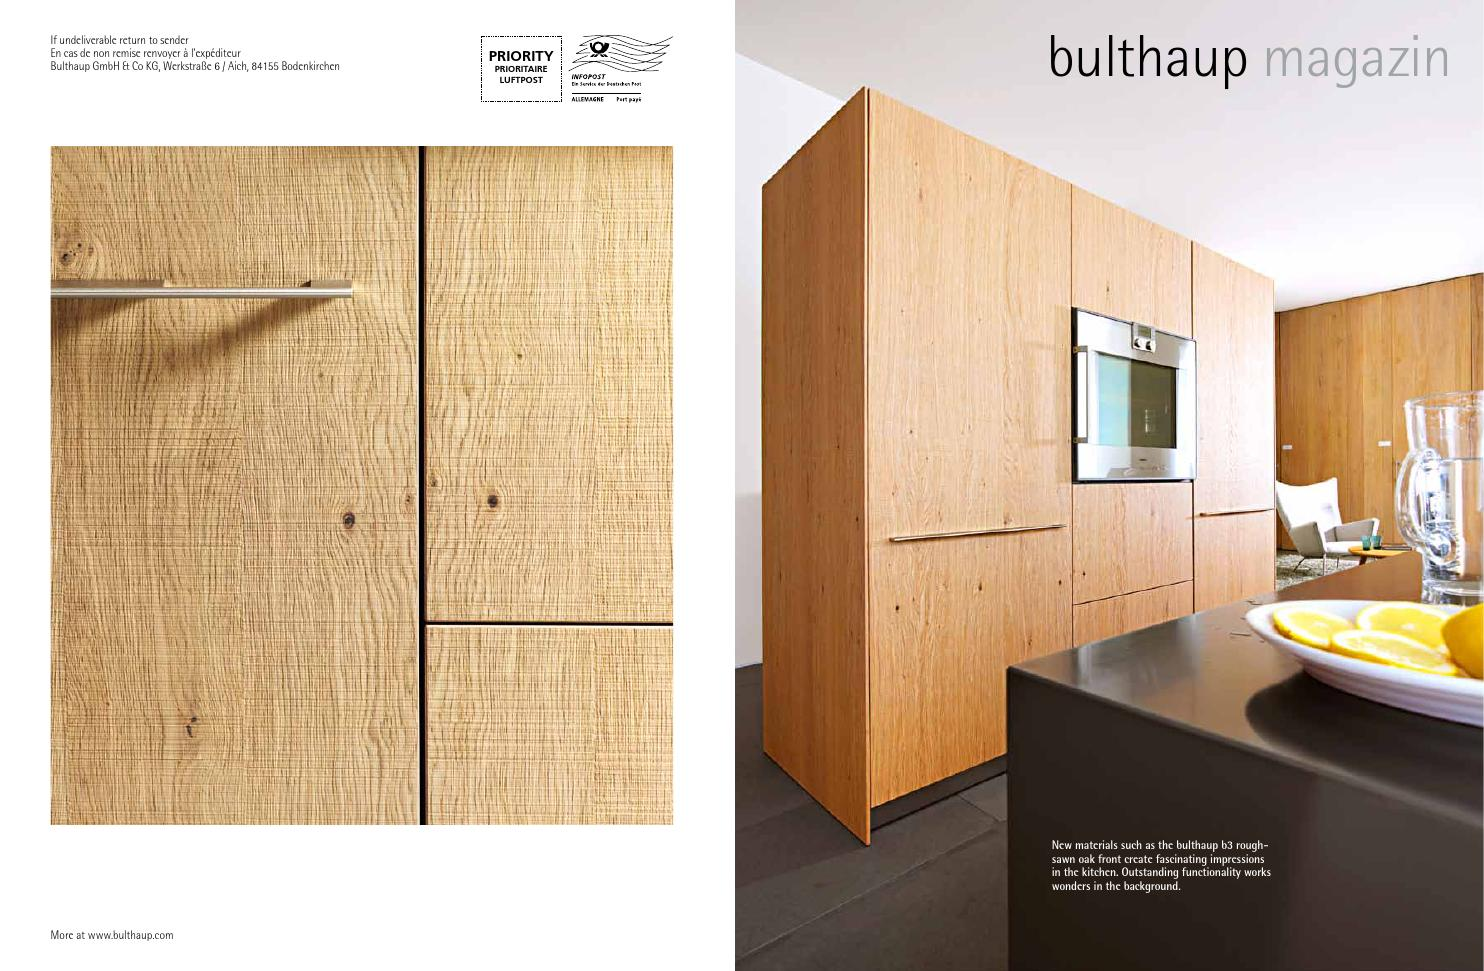 Bulthaup B3 Xtra Bulthaup Magazine By Xtra Furniture - Issuu